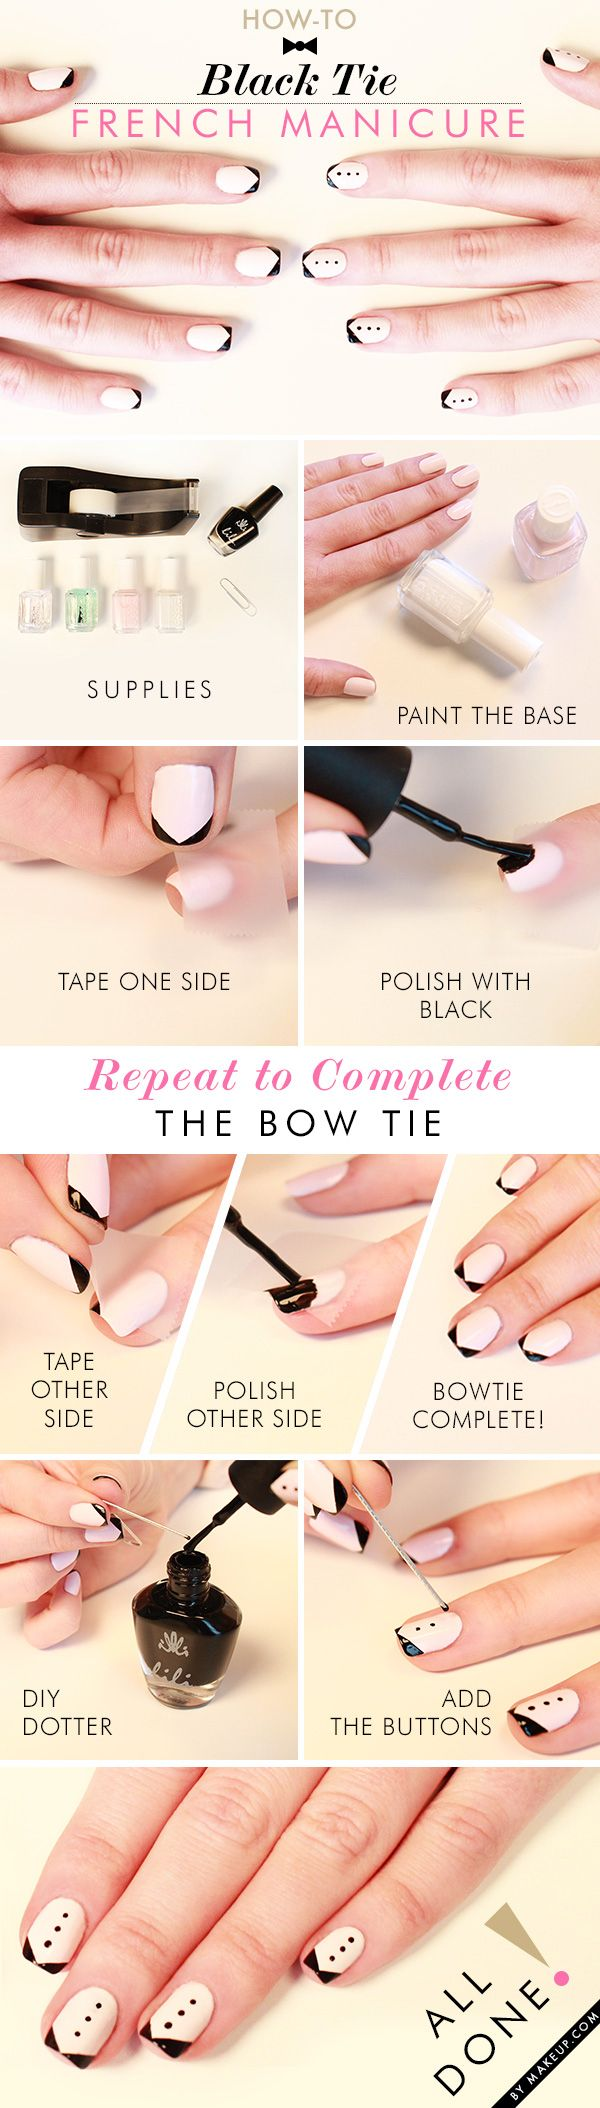 Get fancy with this Black Tie French Manicure!